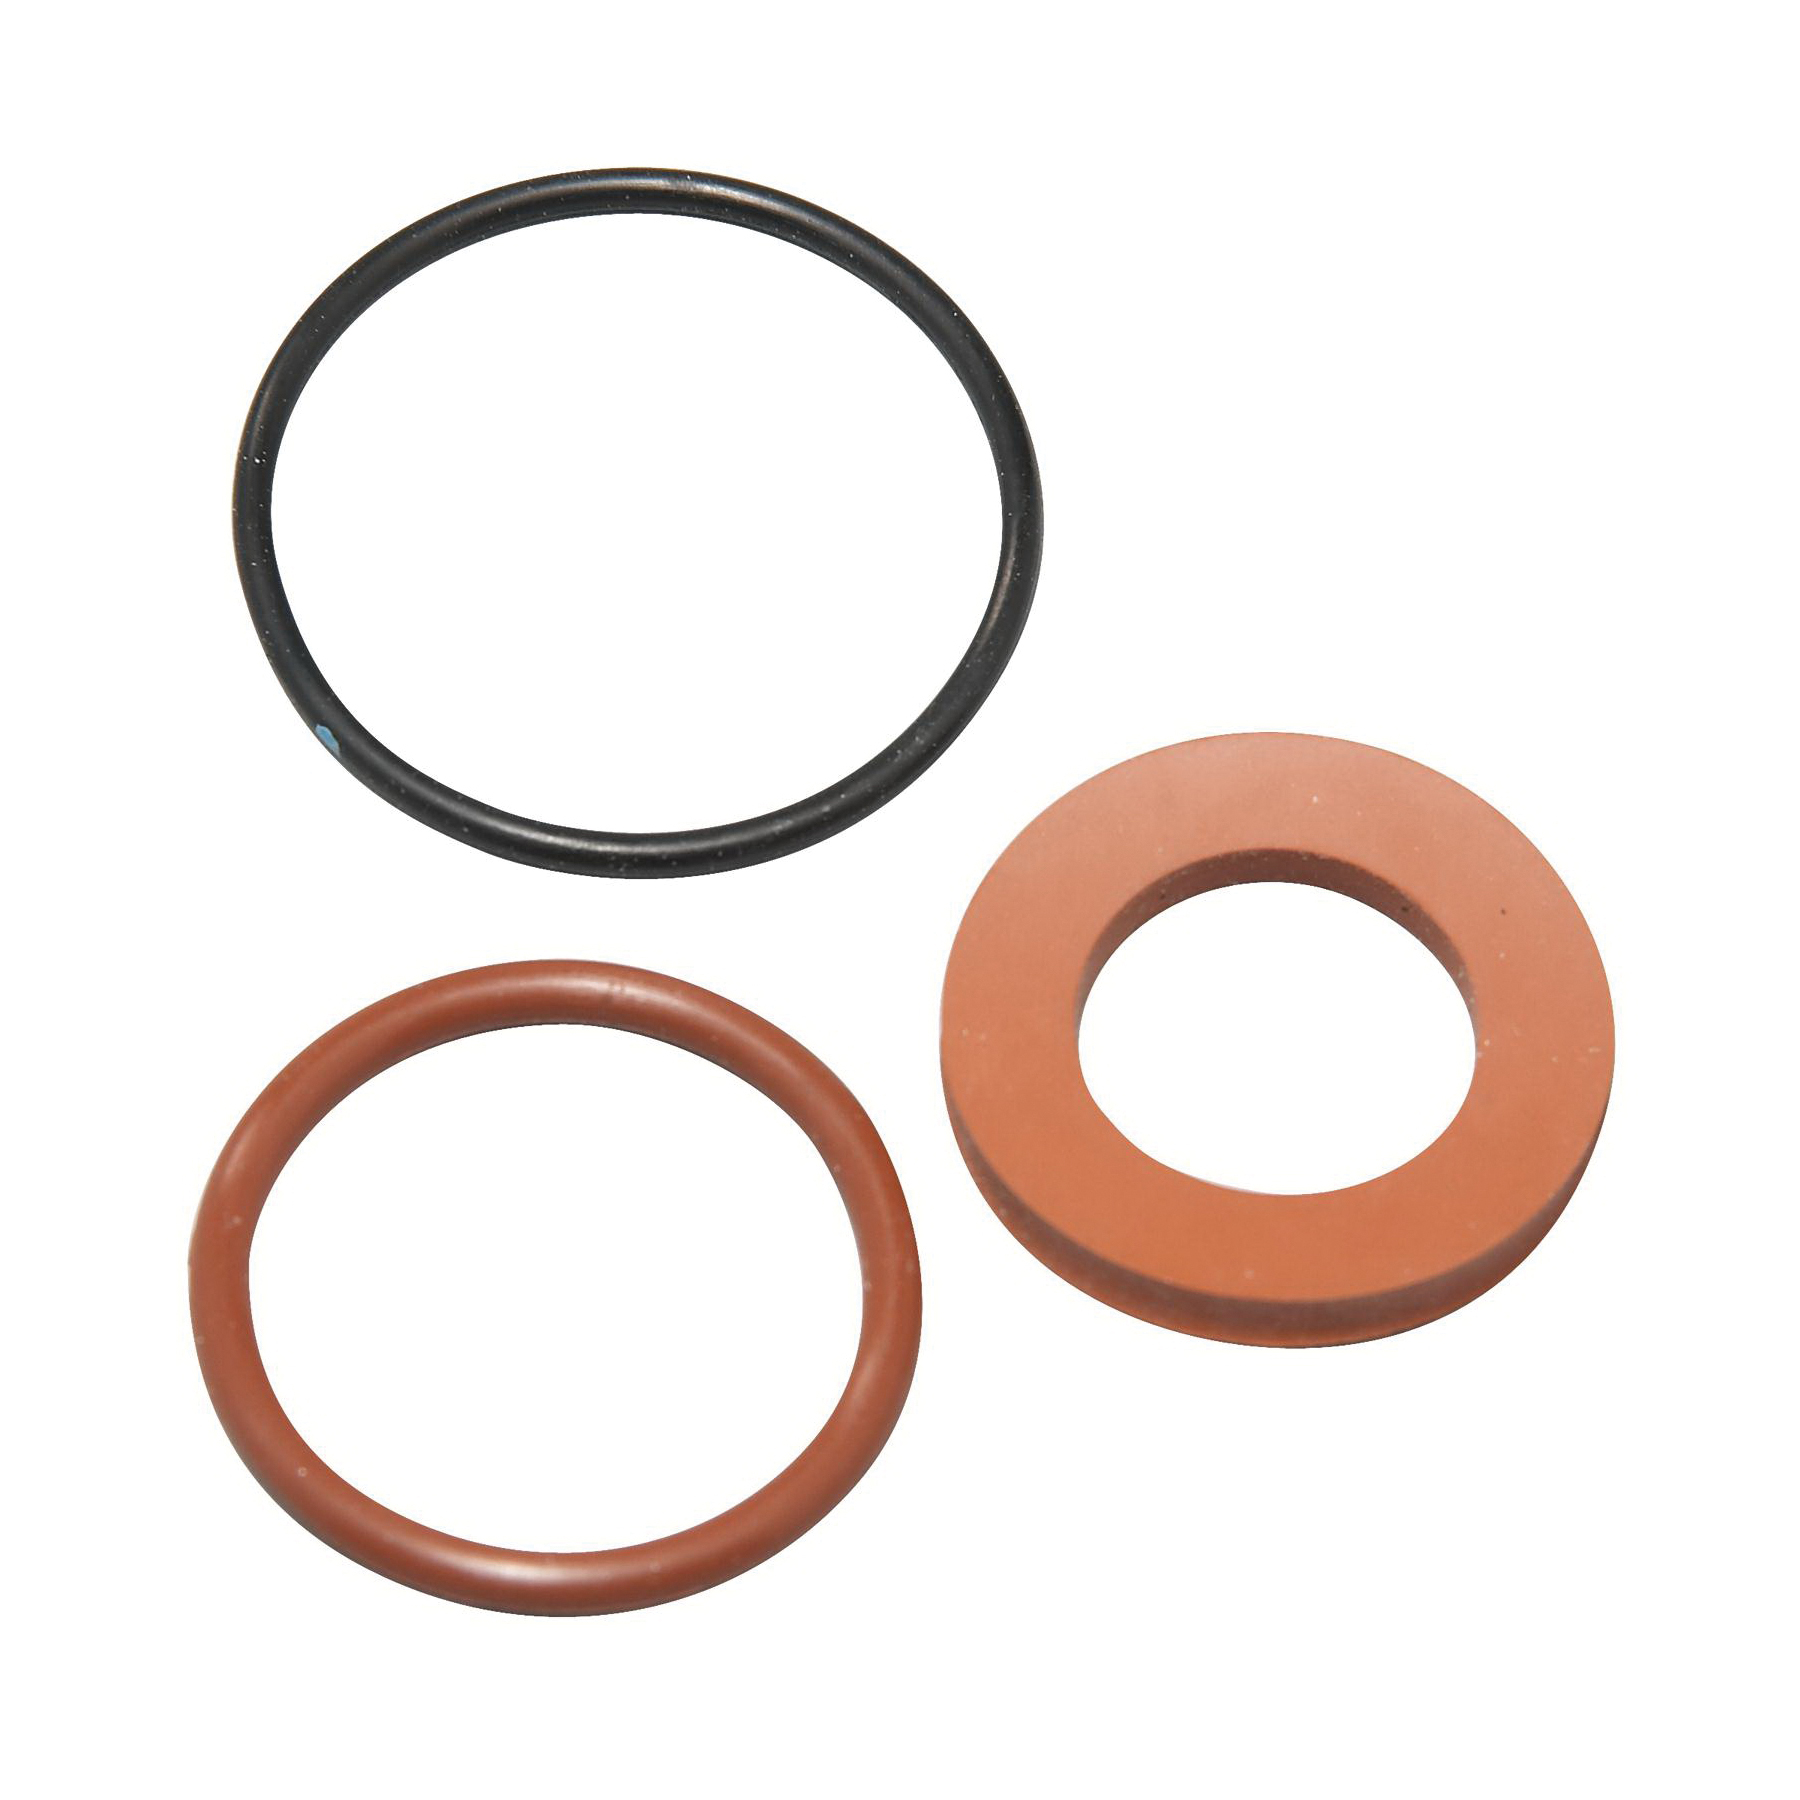 WATTS® 0887706 Rubber Parts Kit, For Use With LF800M4/800M4 1/2 to 3/4 in pressure vacuum breaker